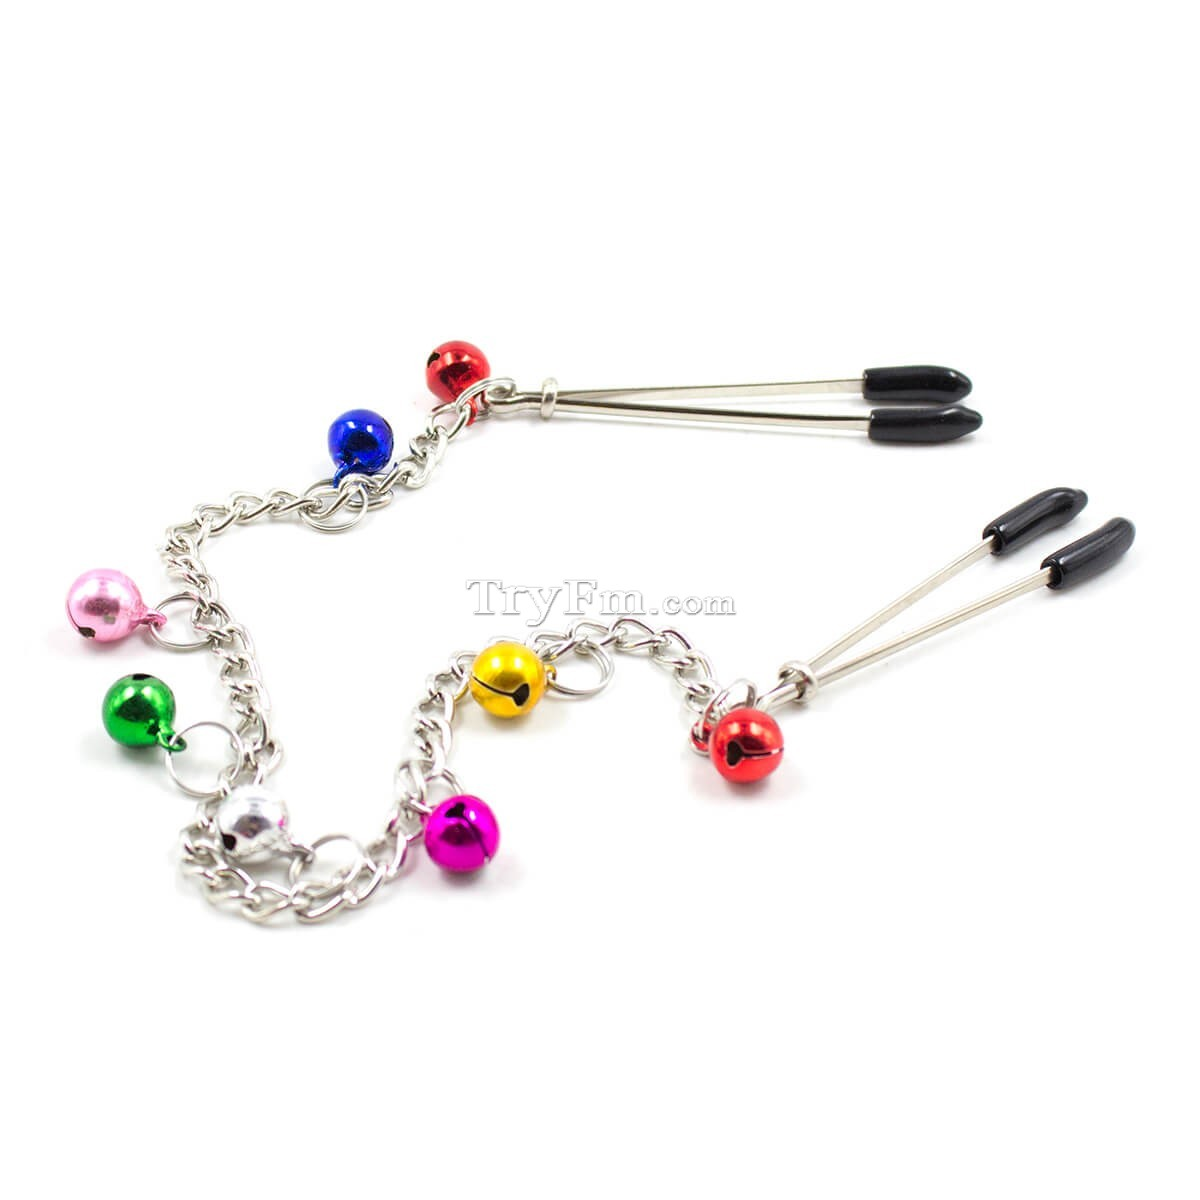 10-nipple-clamp-with-colorful-bells4.jpg